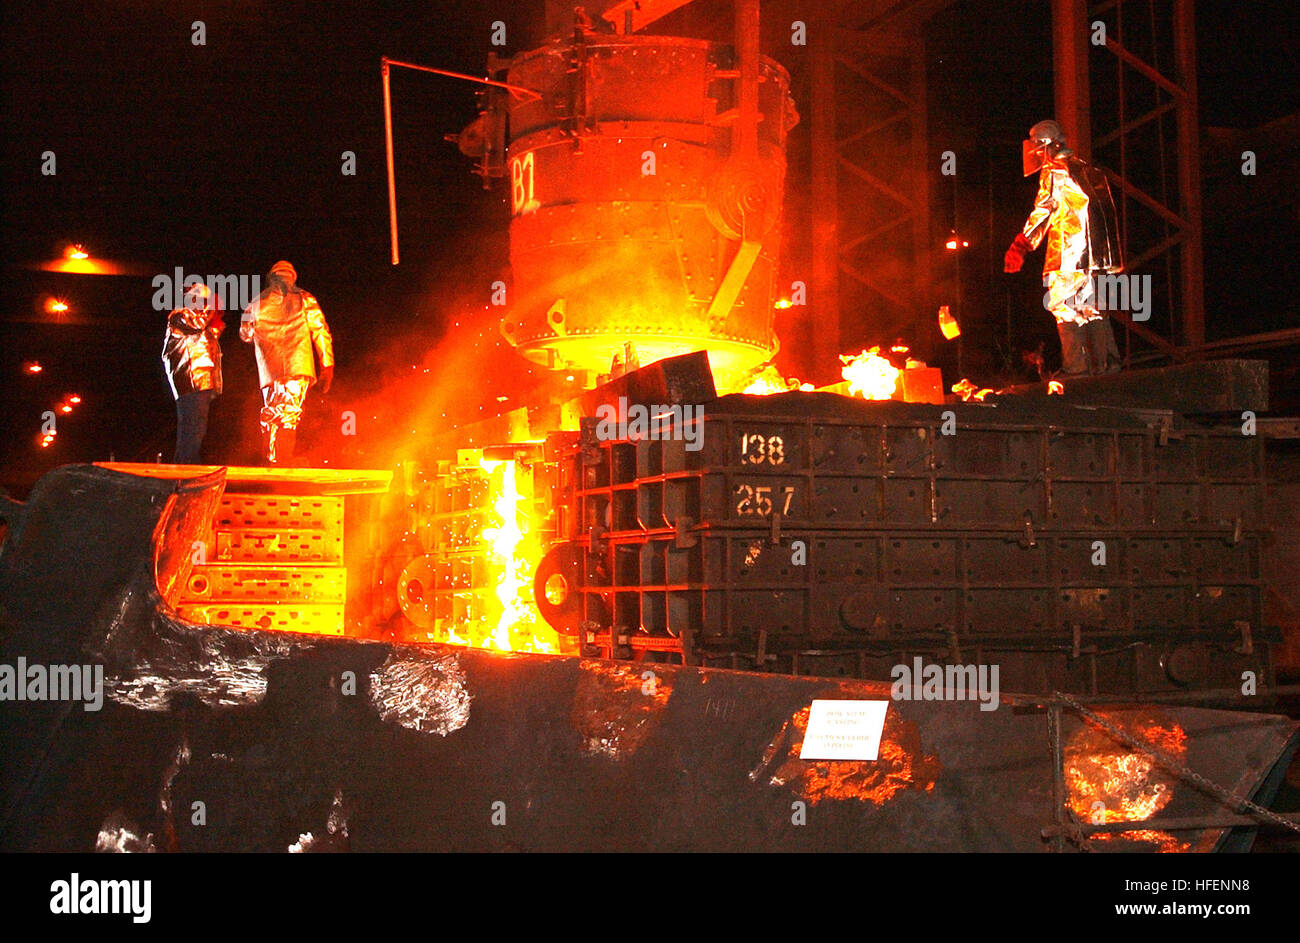 030909-N-9954T-005 Amite, La. (Sept. 9, 2003) -- Foundry workers pour molten steel into a mold to form the bow stem Stock Photo